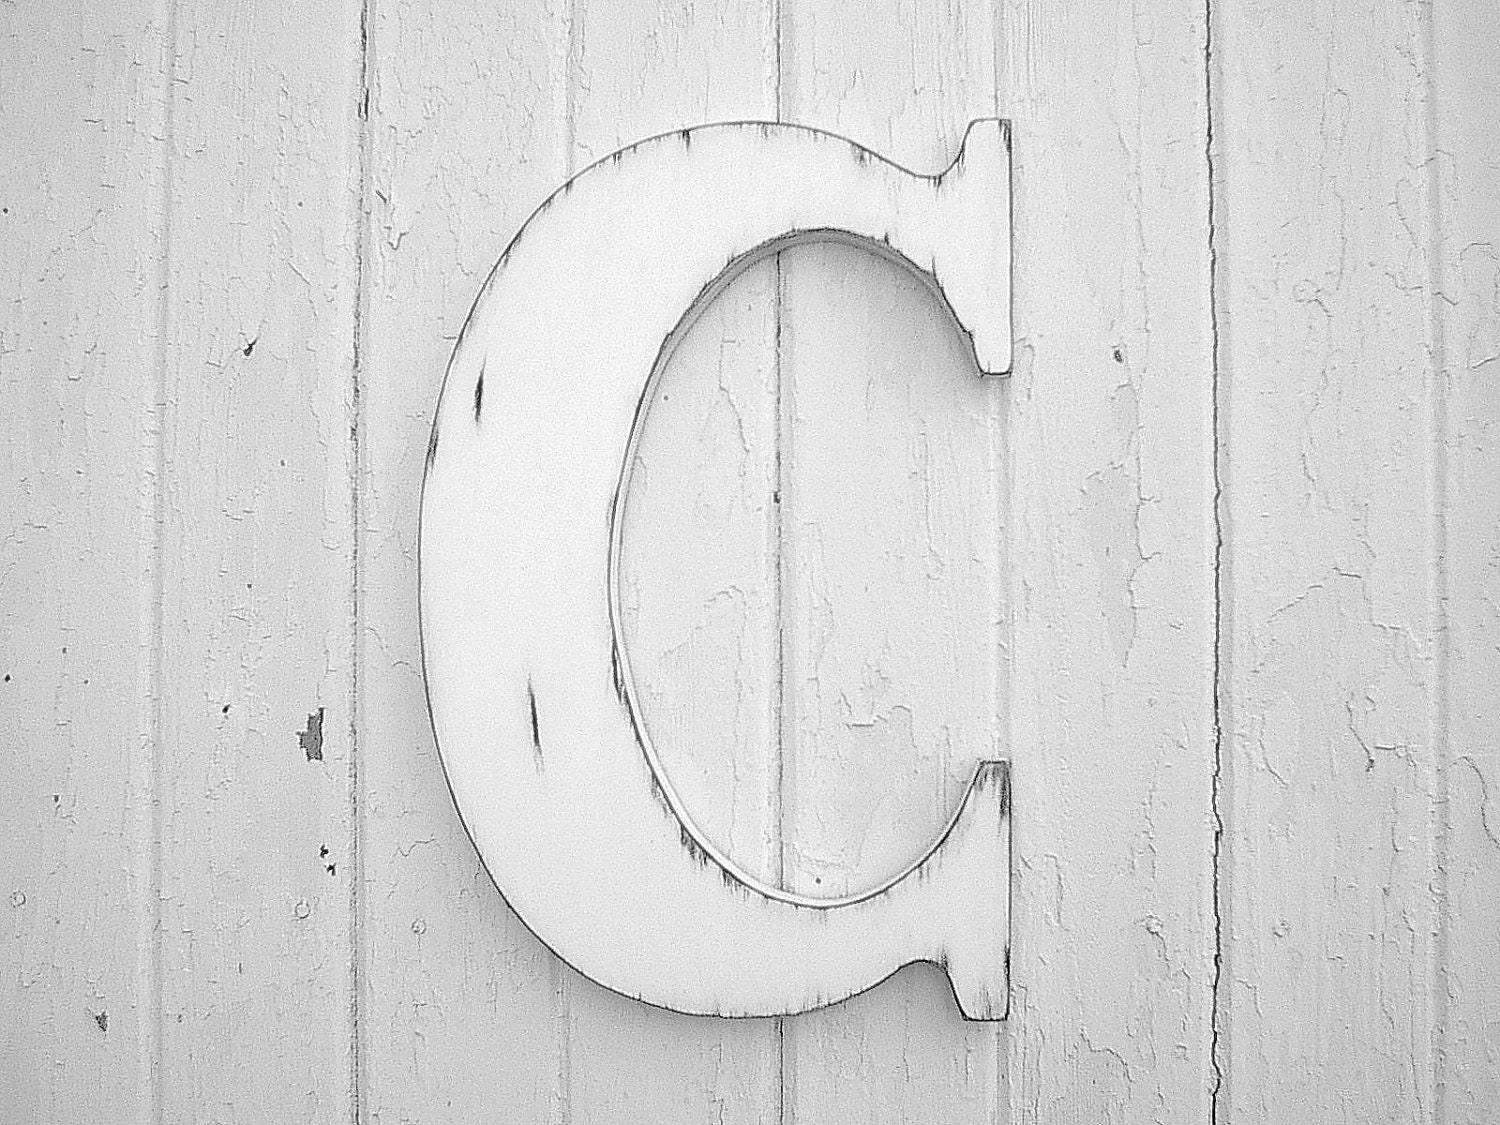 Letter C Wall Hanging Distressed Wooden Wall Hanging Letter C White Initial